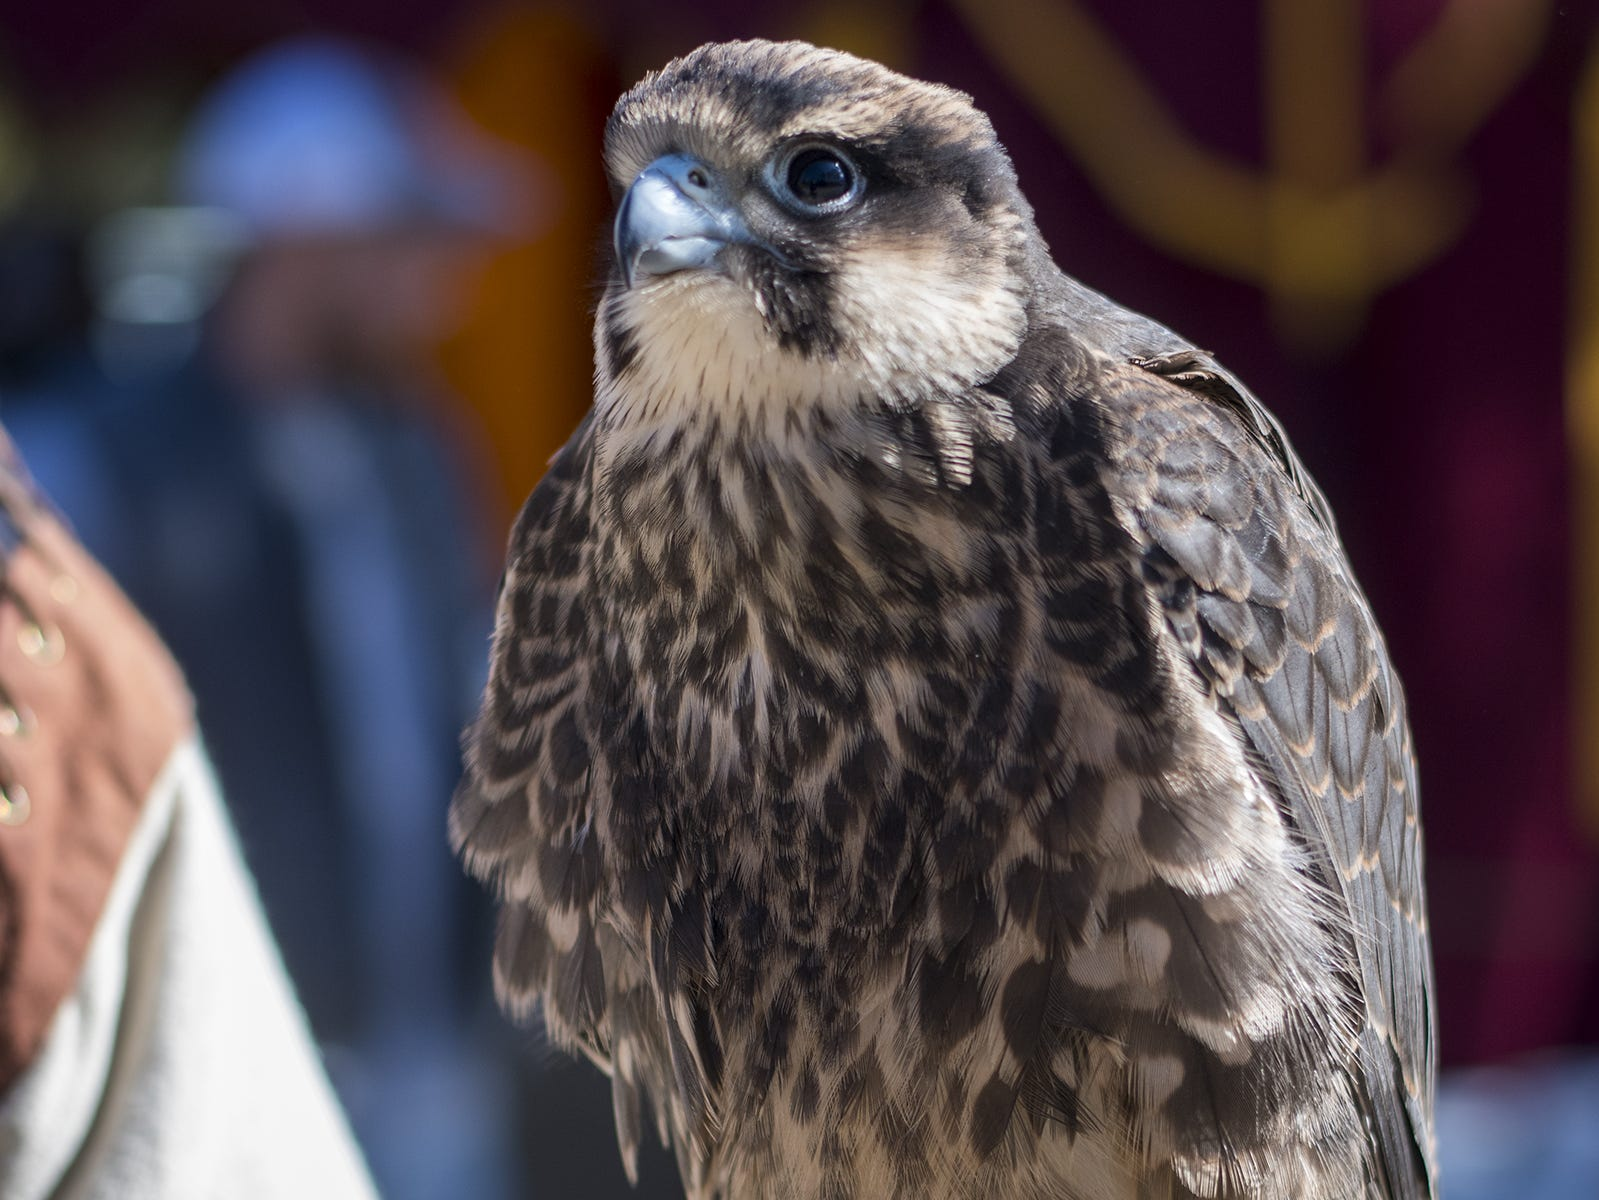 Gary Denzler holds a Lanner falcon during Romance Weekend at the Ohio Renaissance Festival Sunday, October 21, 2018 in Waynesville, Ohio. Lanner falcons were used by the squires of Medieval times for hunting and are closely related to the peregrine.